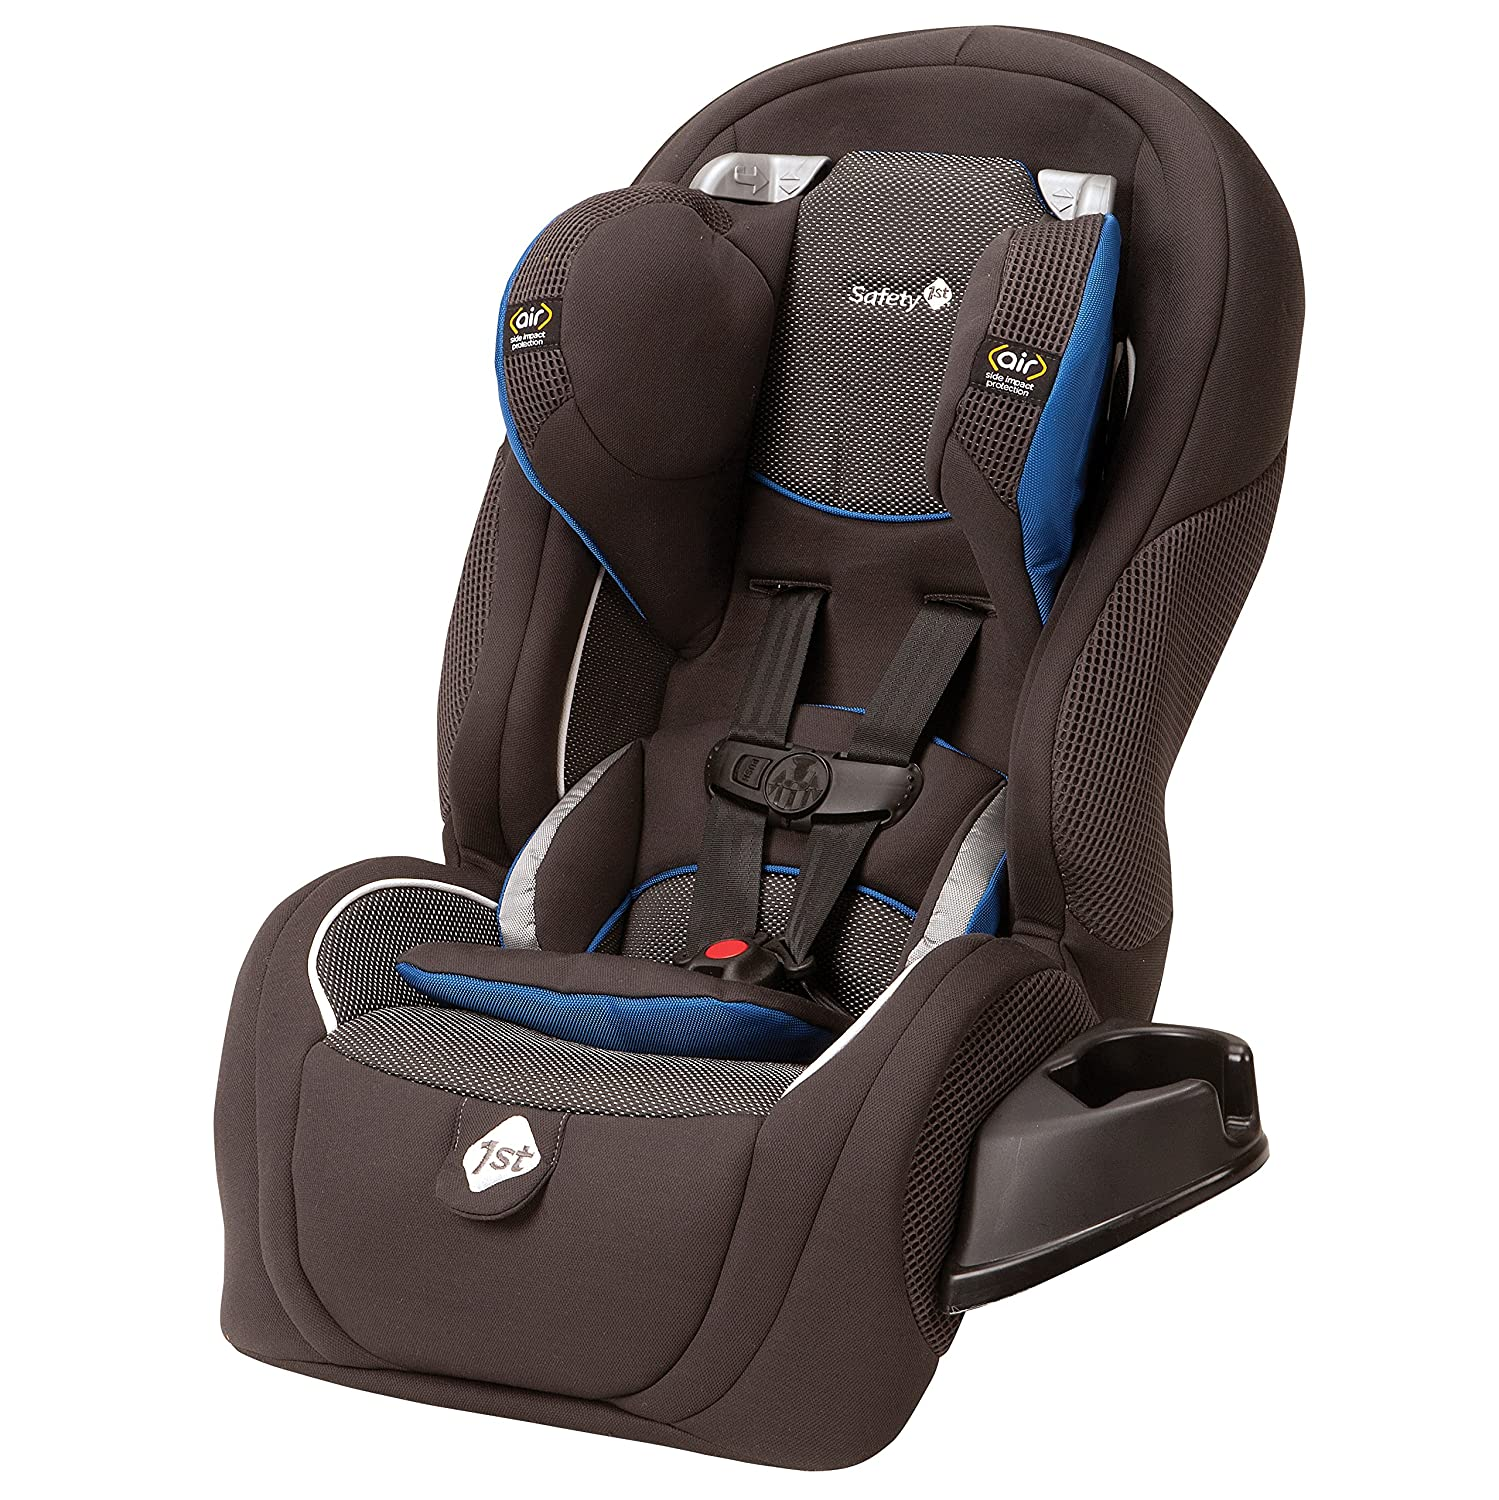 Amazon.com : Safety 1st Complete Air 65 Convertible Car Seat York : Baby